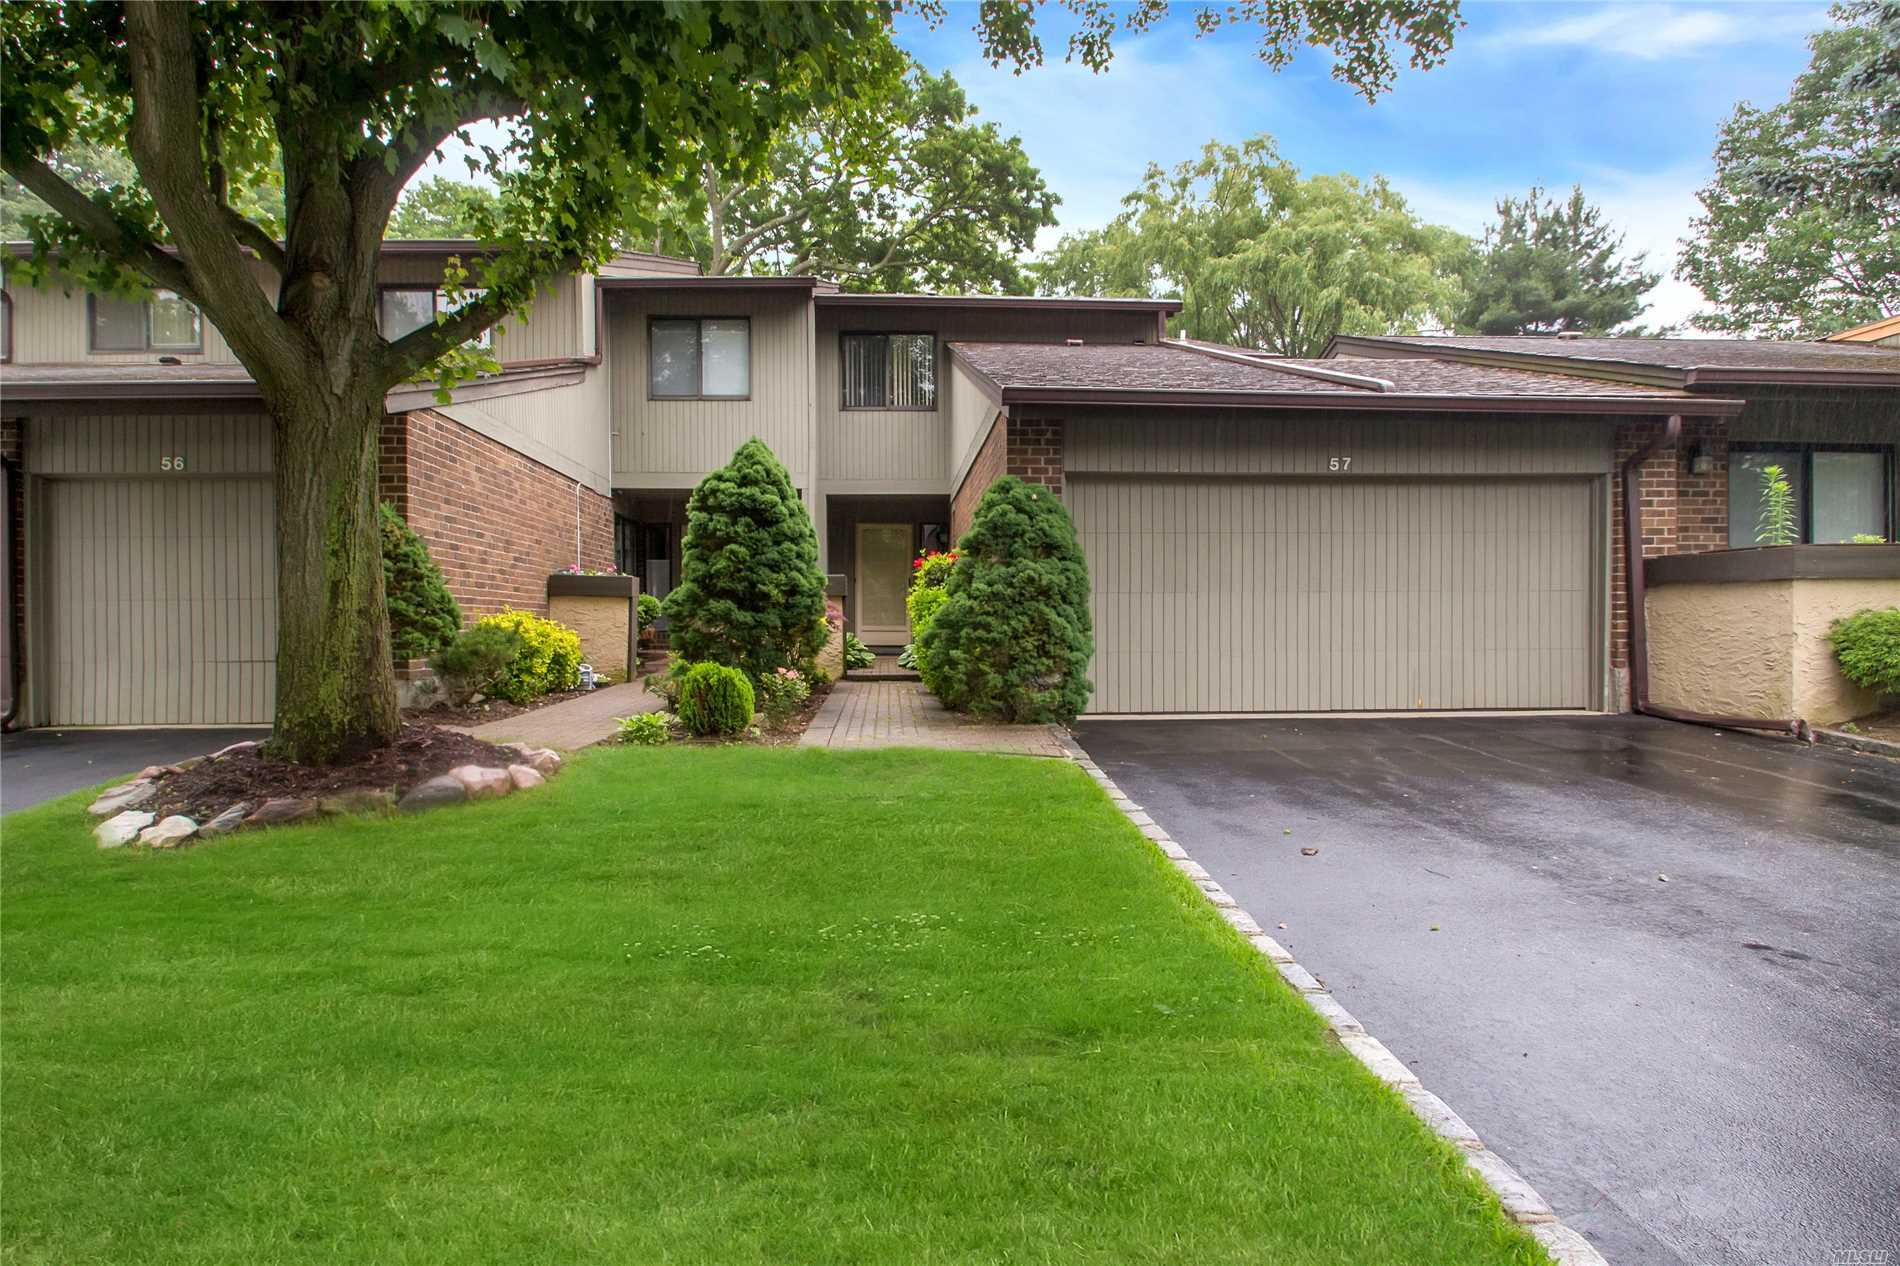 Located In The Back Of The Community With Year Round Vistas Of Greenery, Sits This Three Bedroom And Two And A Half Bath Condo With Updated Kitchen And Baths, Fireplace, Wood Floors And Cathedral Ceilings. Can Be In For The New School Year.